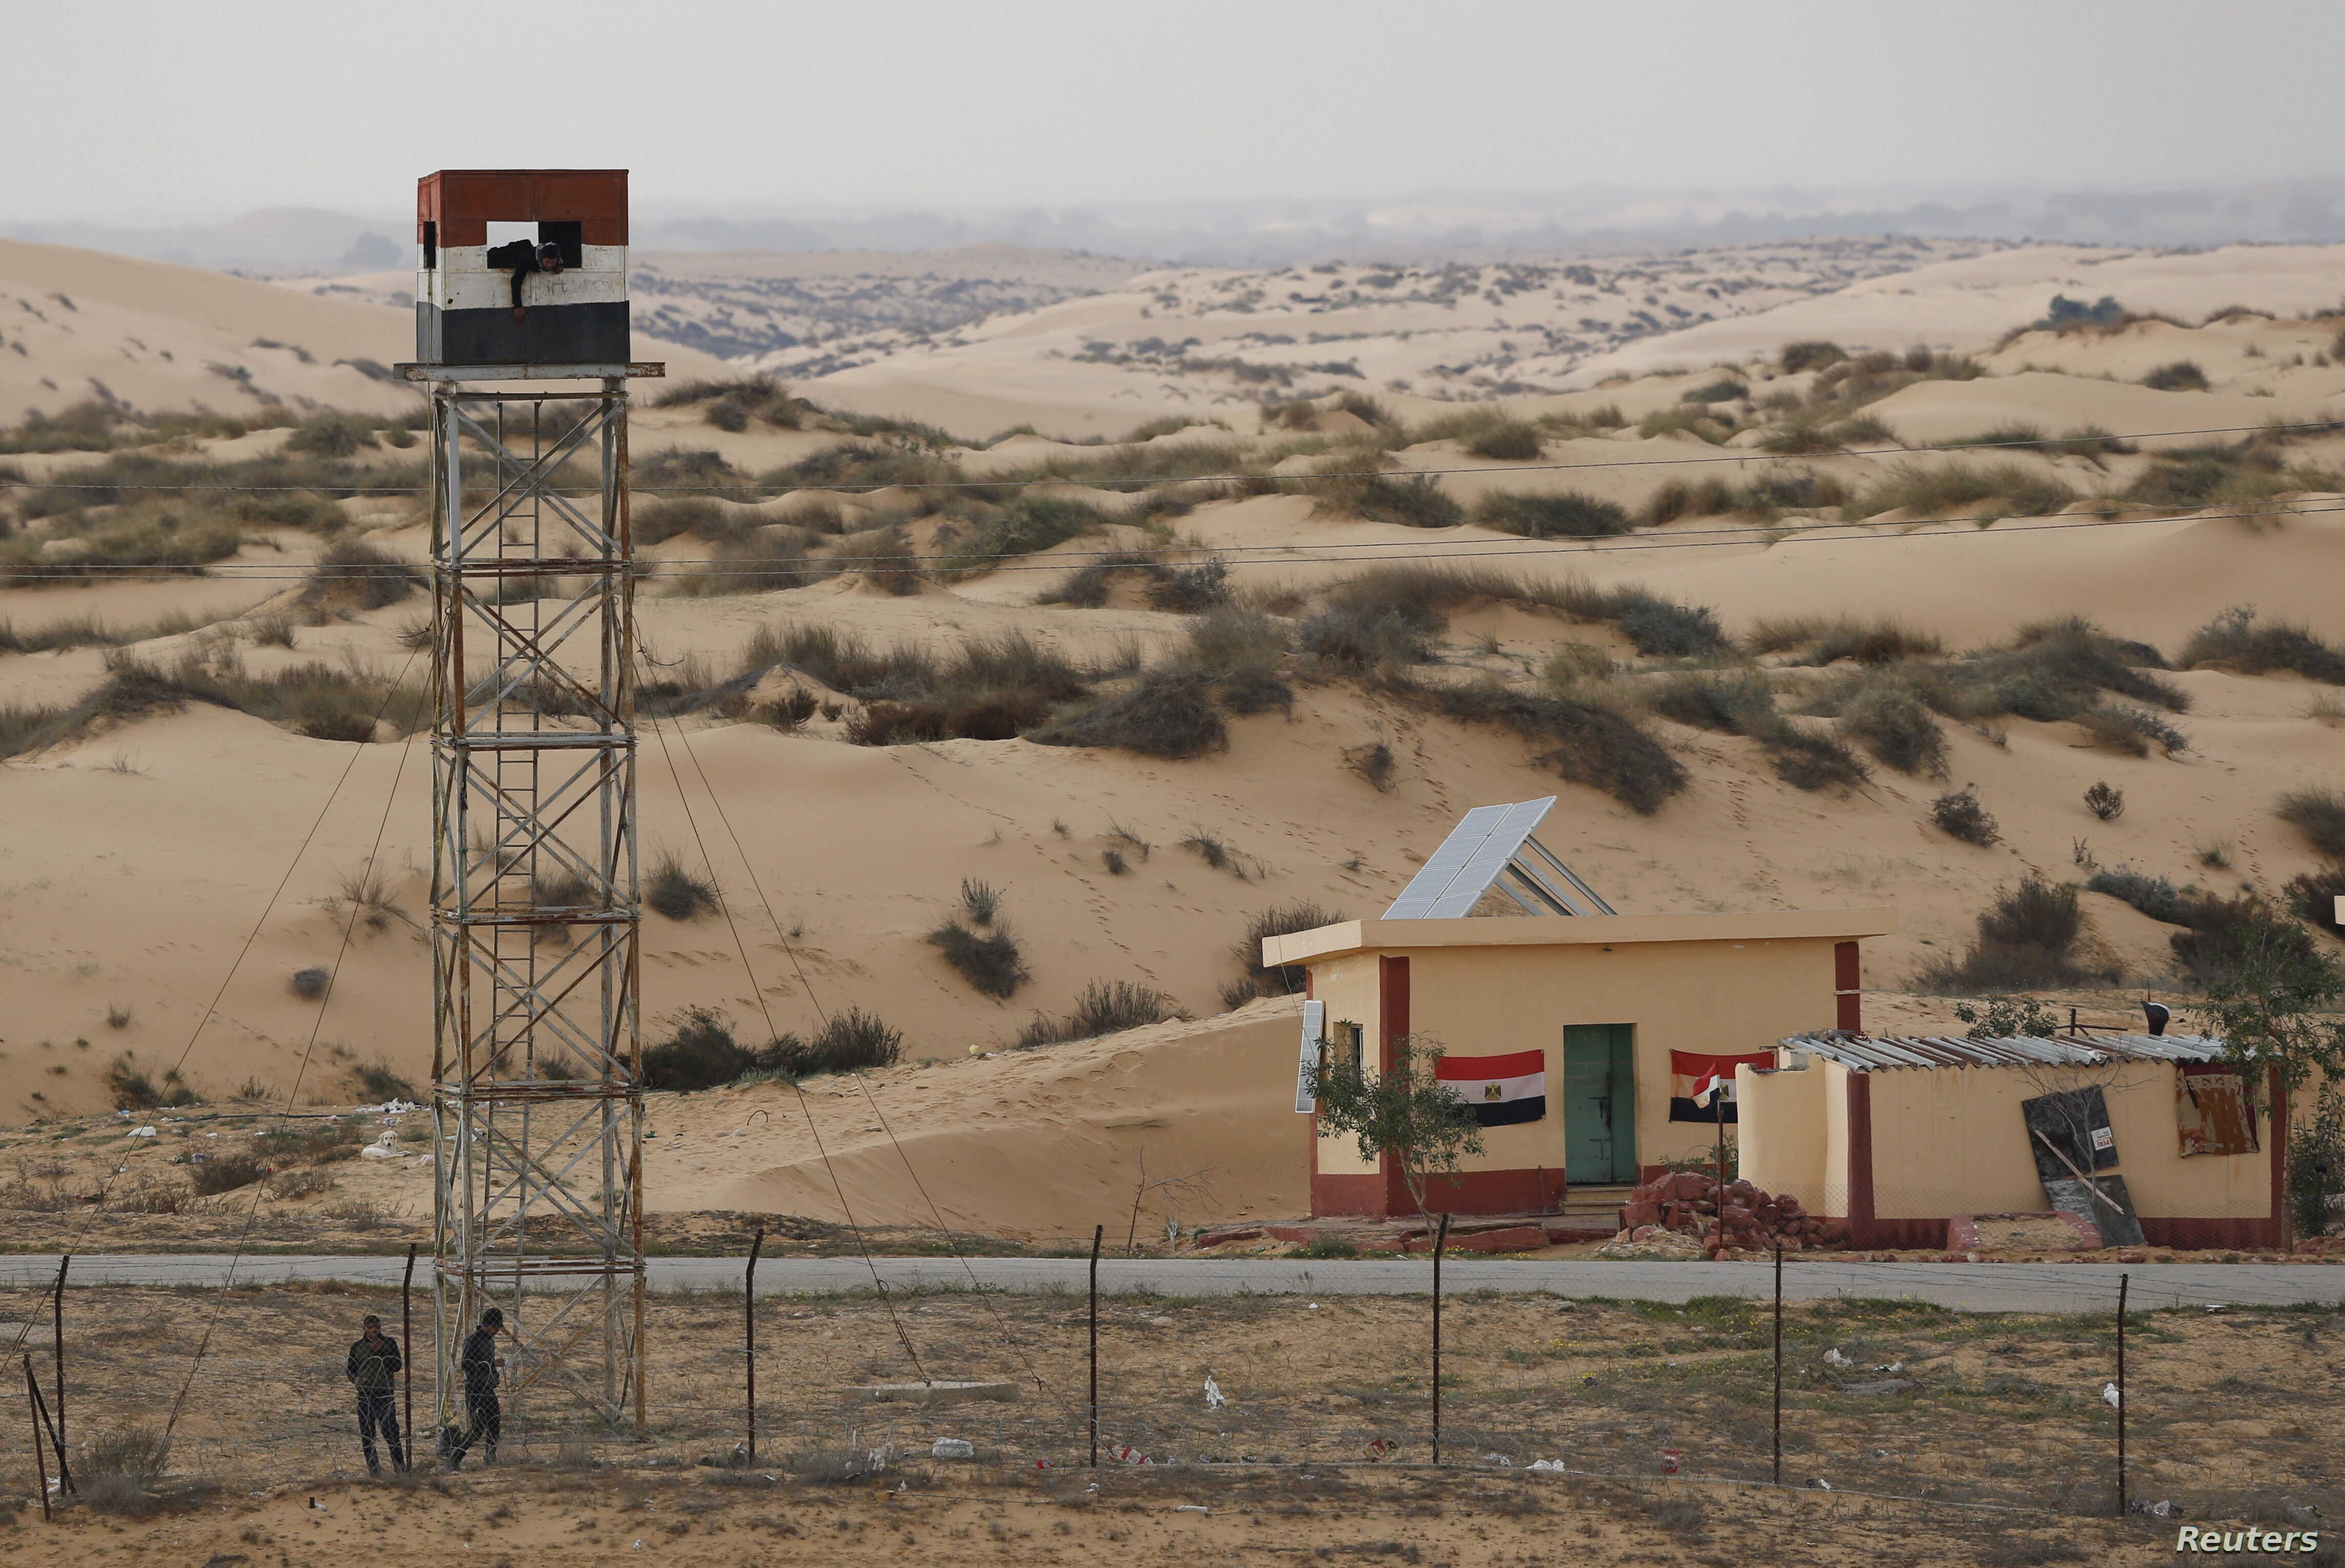 An Egyptian policeman gestures from an observation tower is seen from the Israeli side of the border with Egypt's Sinai peninsula, in Israel's Negev Desert February 10, 2016. REUTERS/Amir Cohen